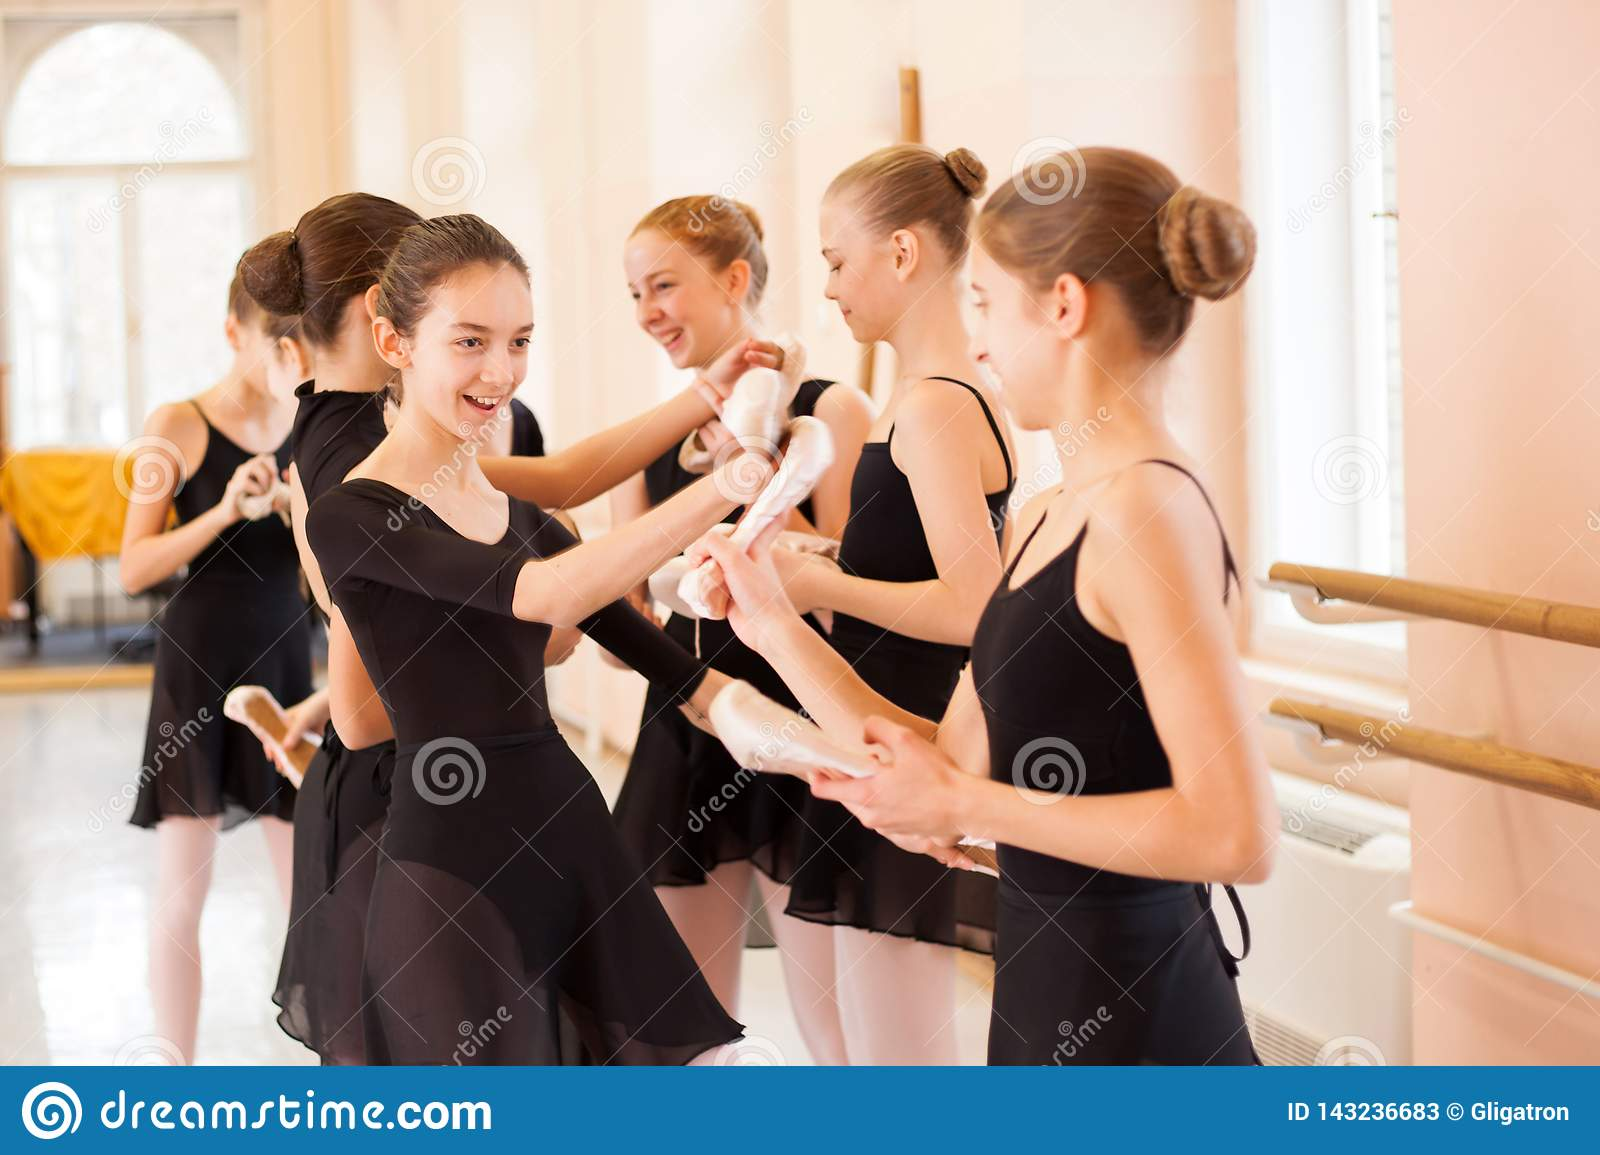 Medium group of teenage girls having fun and relaxing after ballet class